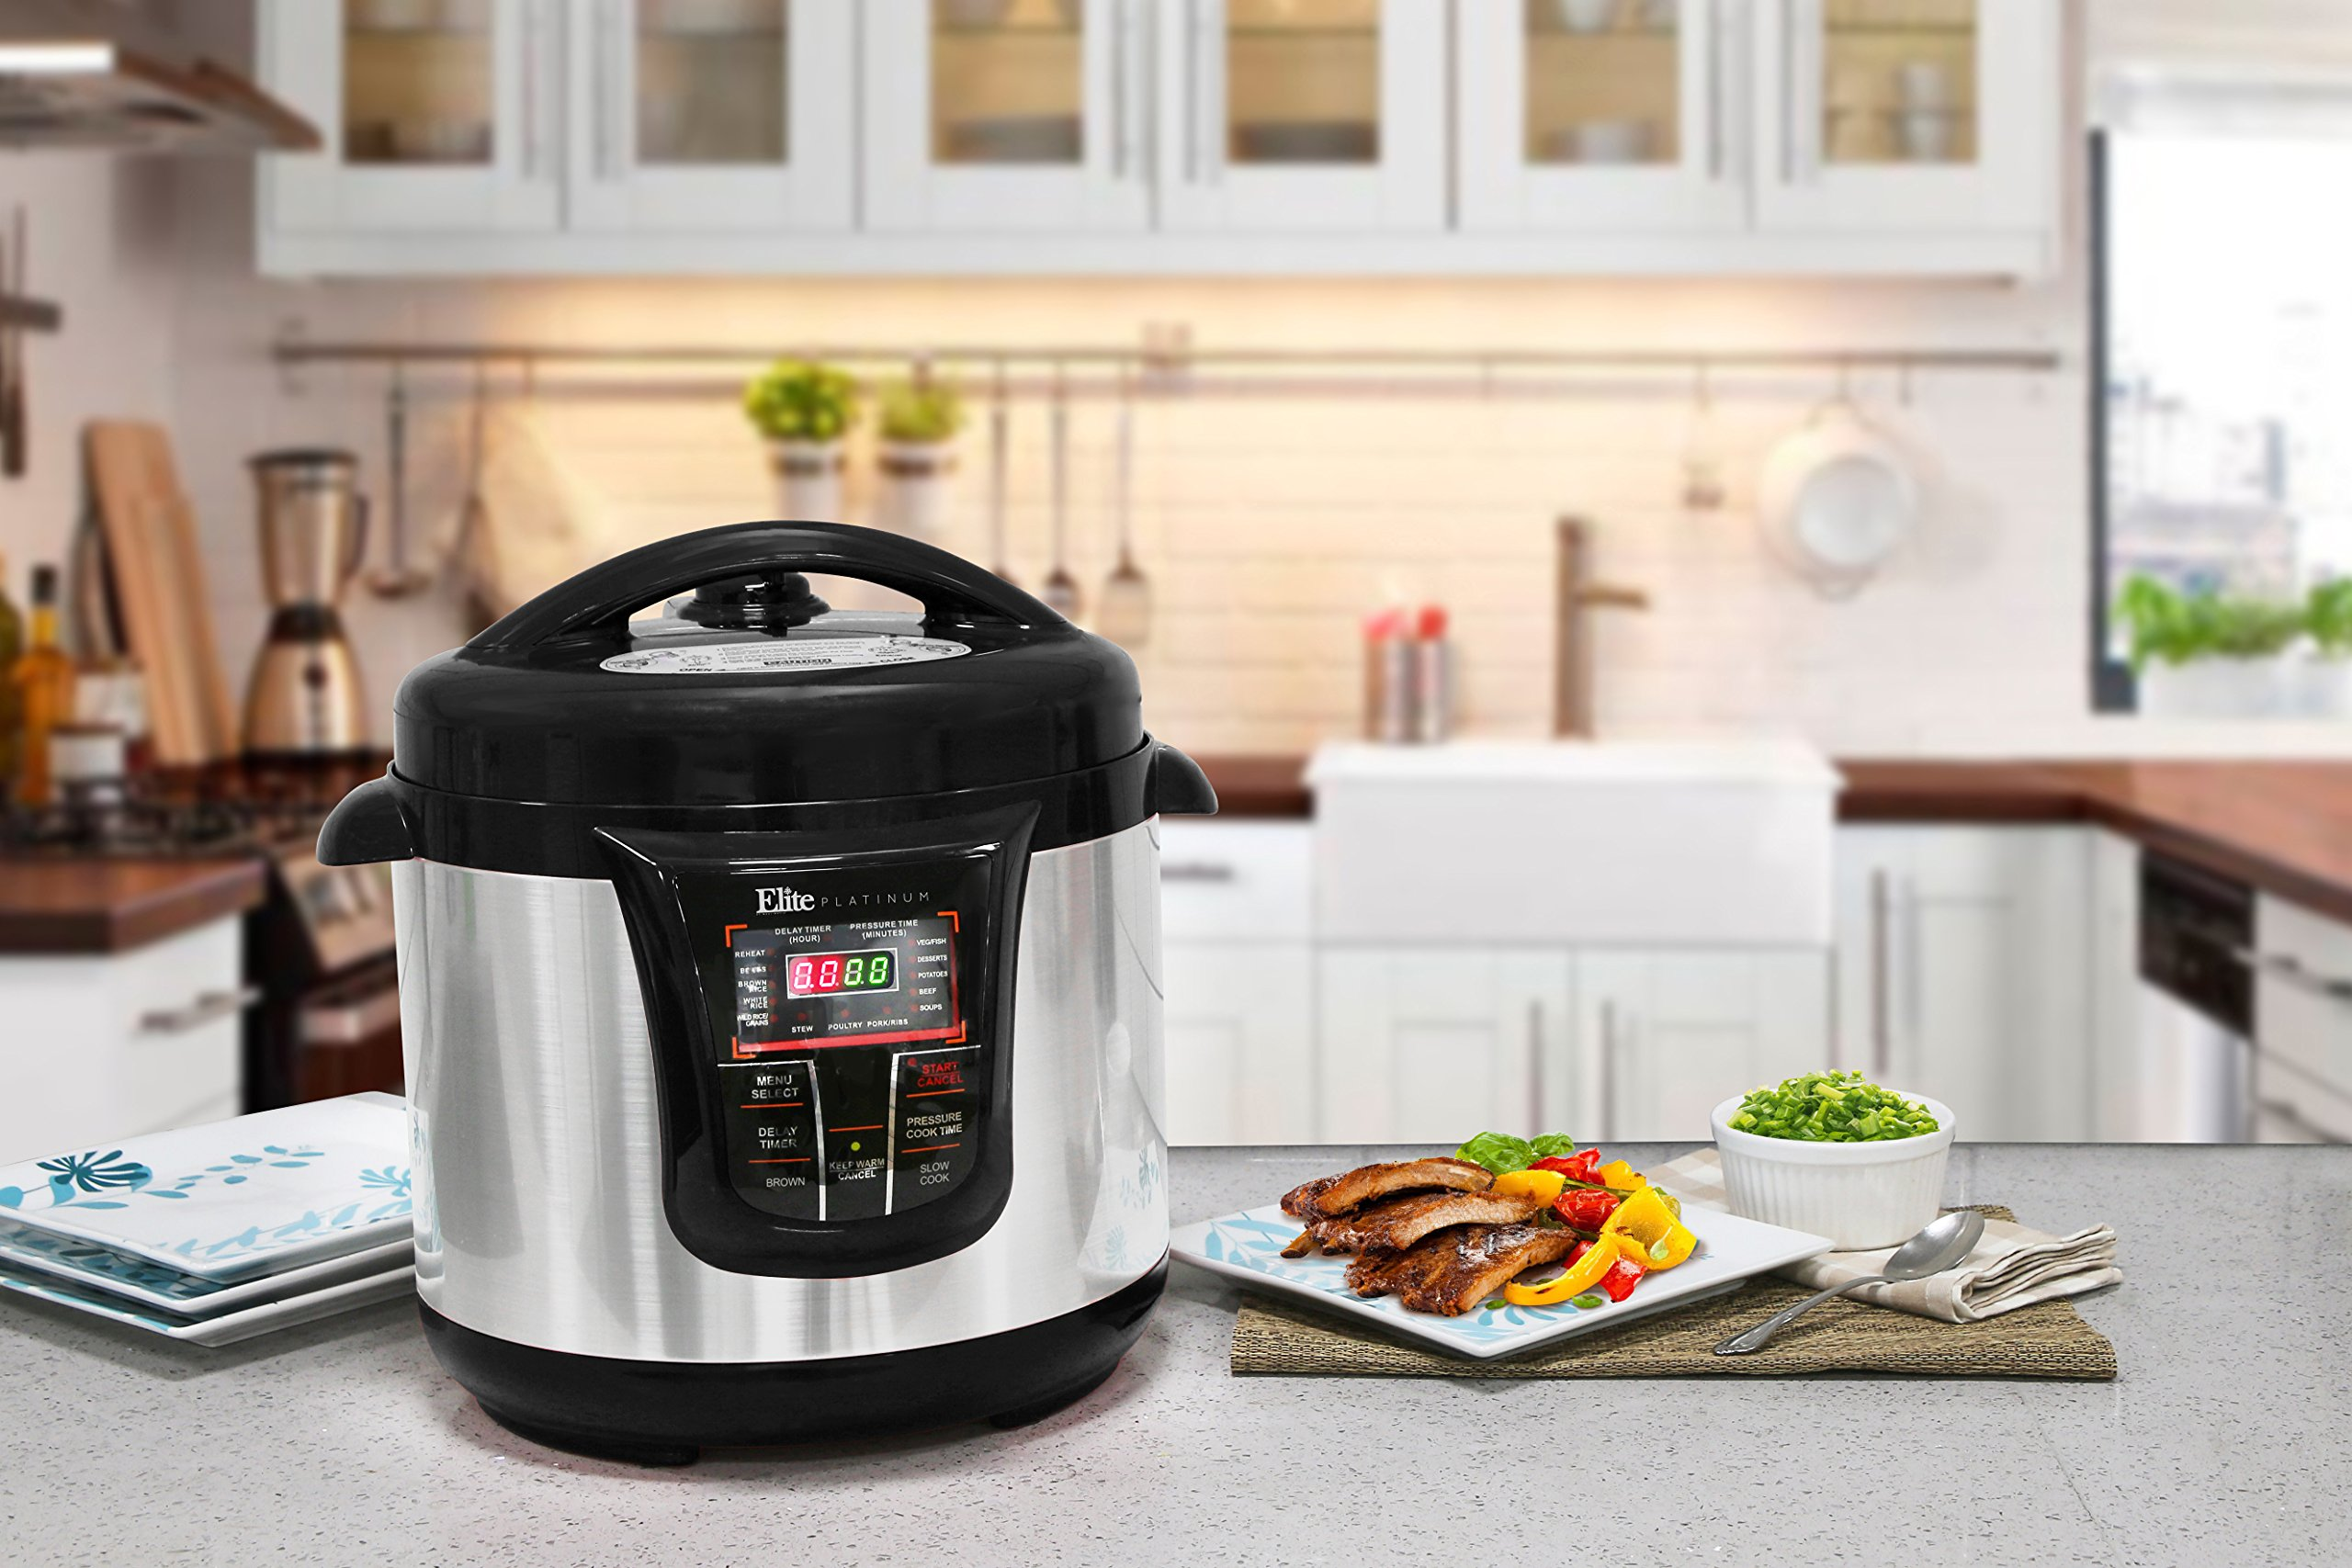 Elite Platinum 8 Quart 14-in-1 Multi-Use Programmable Pressure Cooker, Slow Cooker, Rice Cooker, Sauté, and Warmer - Black by Maxi-Matic (Image #8)